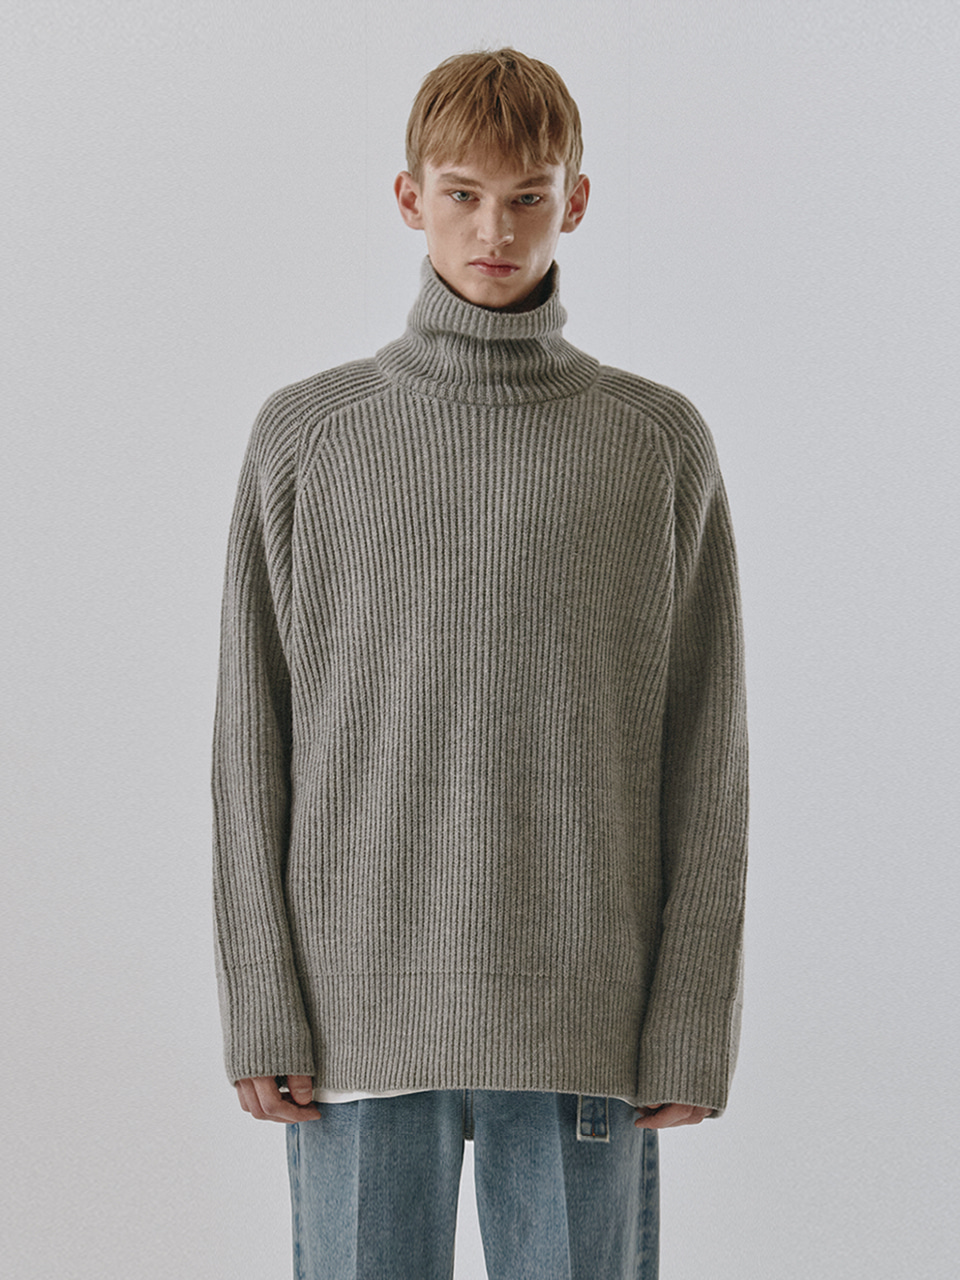 UNISEX RIBBED FUNNEL NECK WOOL SWEATER MELANGE GREY